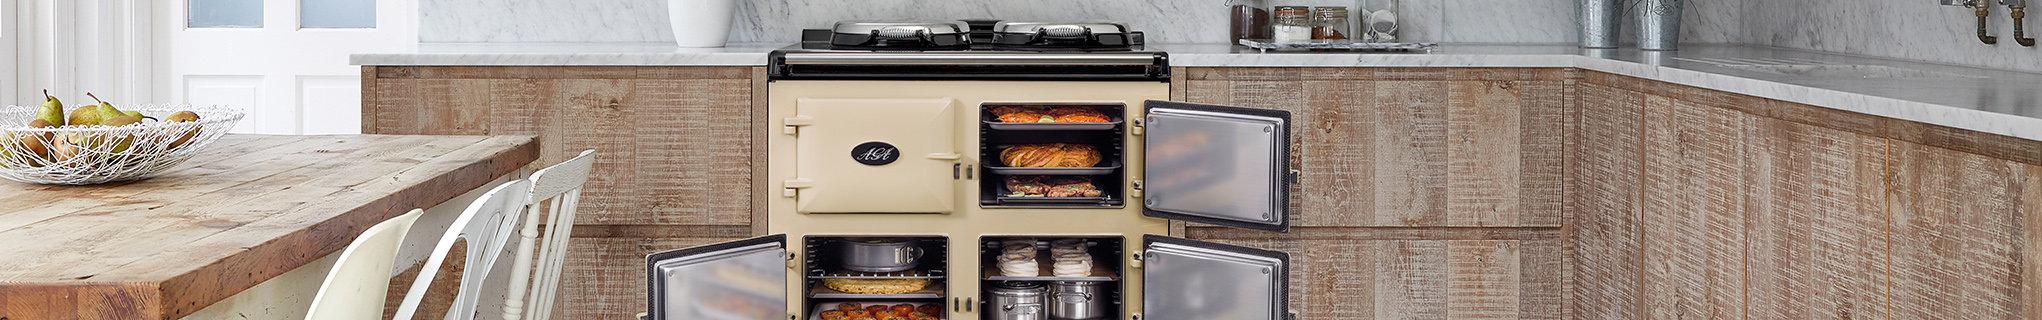 AGA cast-iron cookers